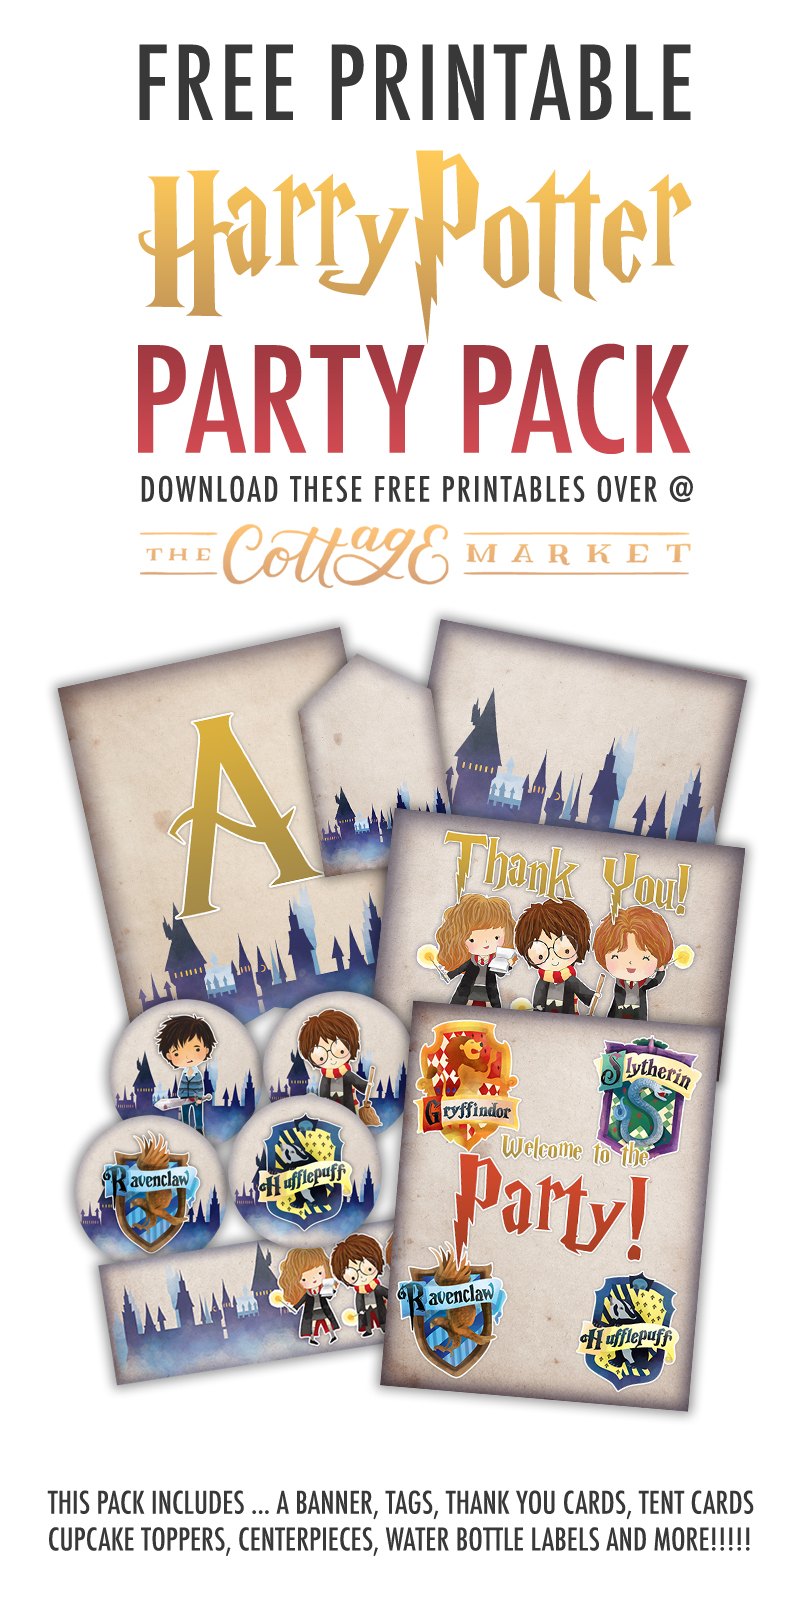 https://thecottagemarket.com/wp-content/uploads/2018/08/TCM-HarryPotter-PartyPack-Tower.jpg